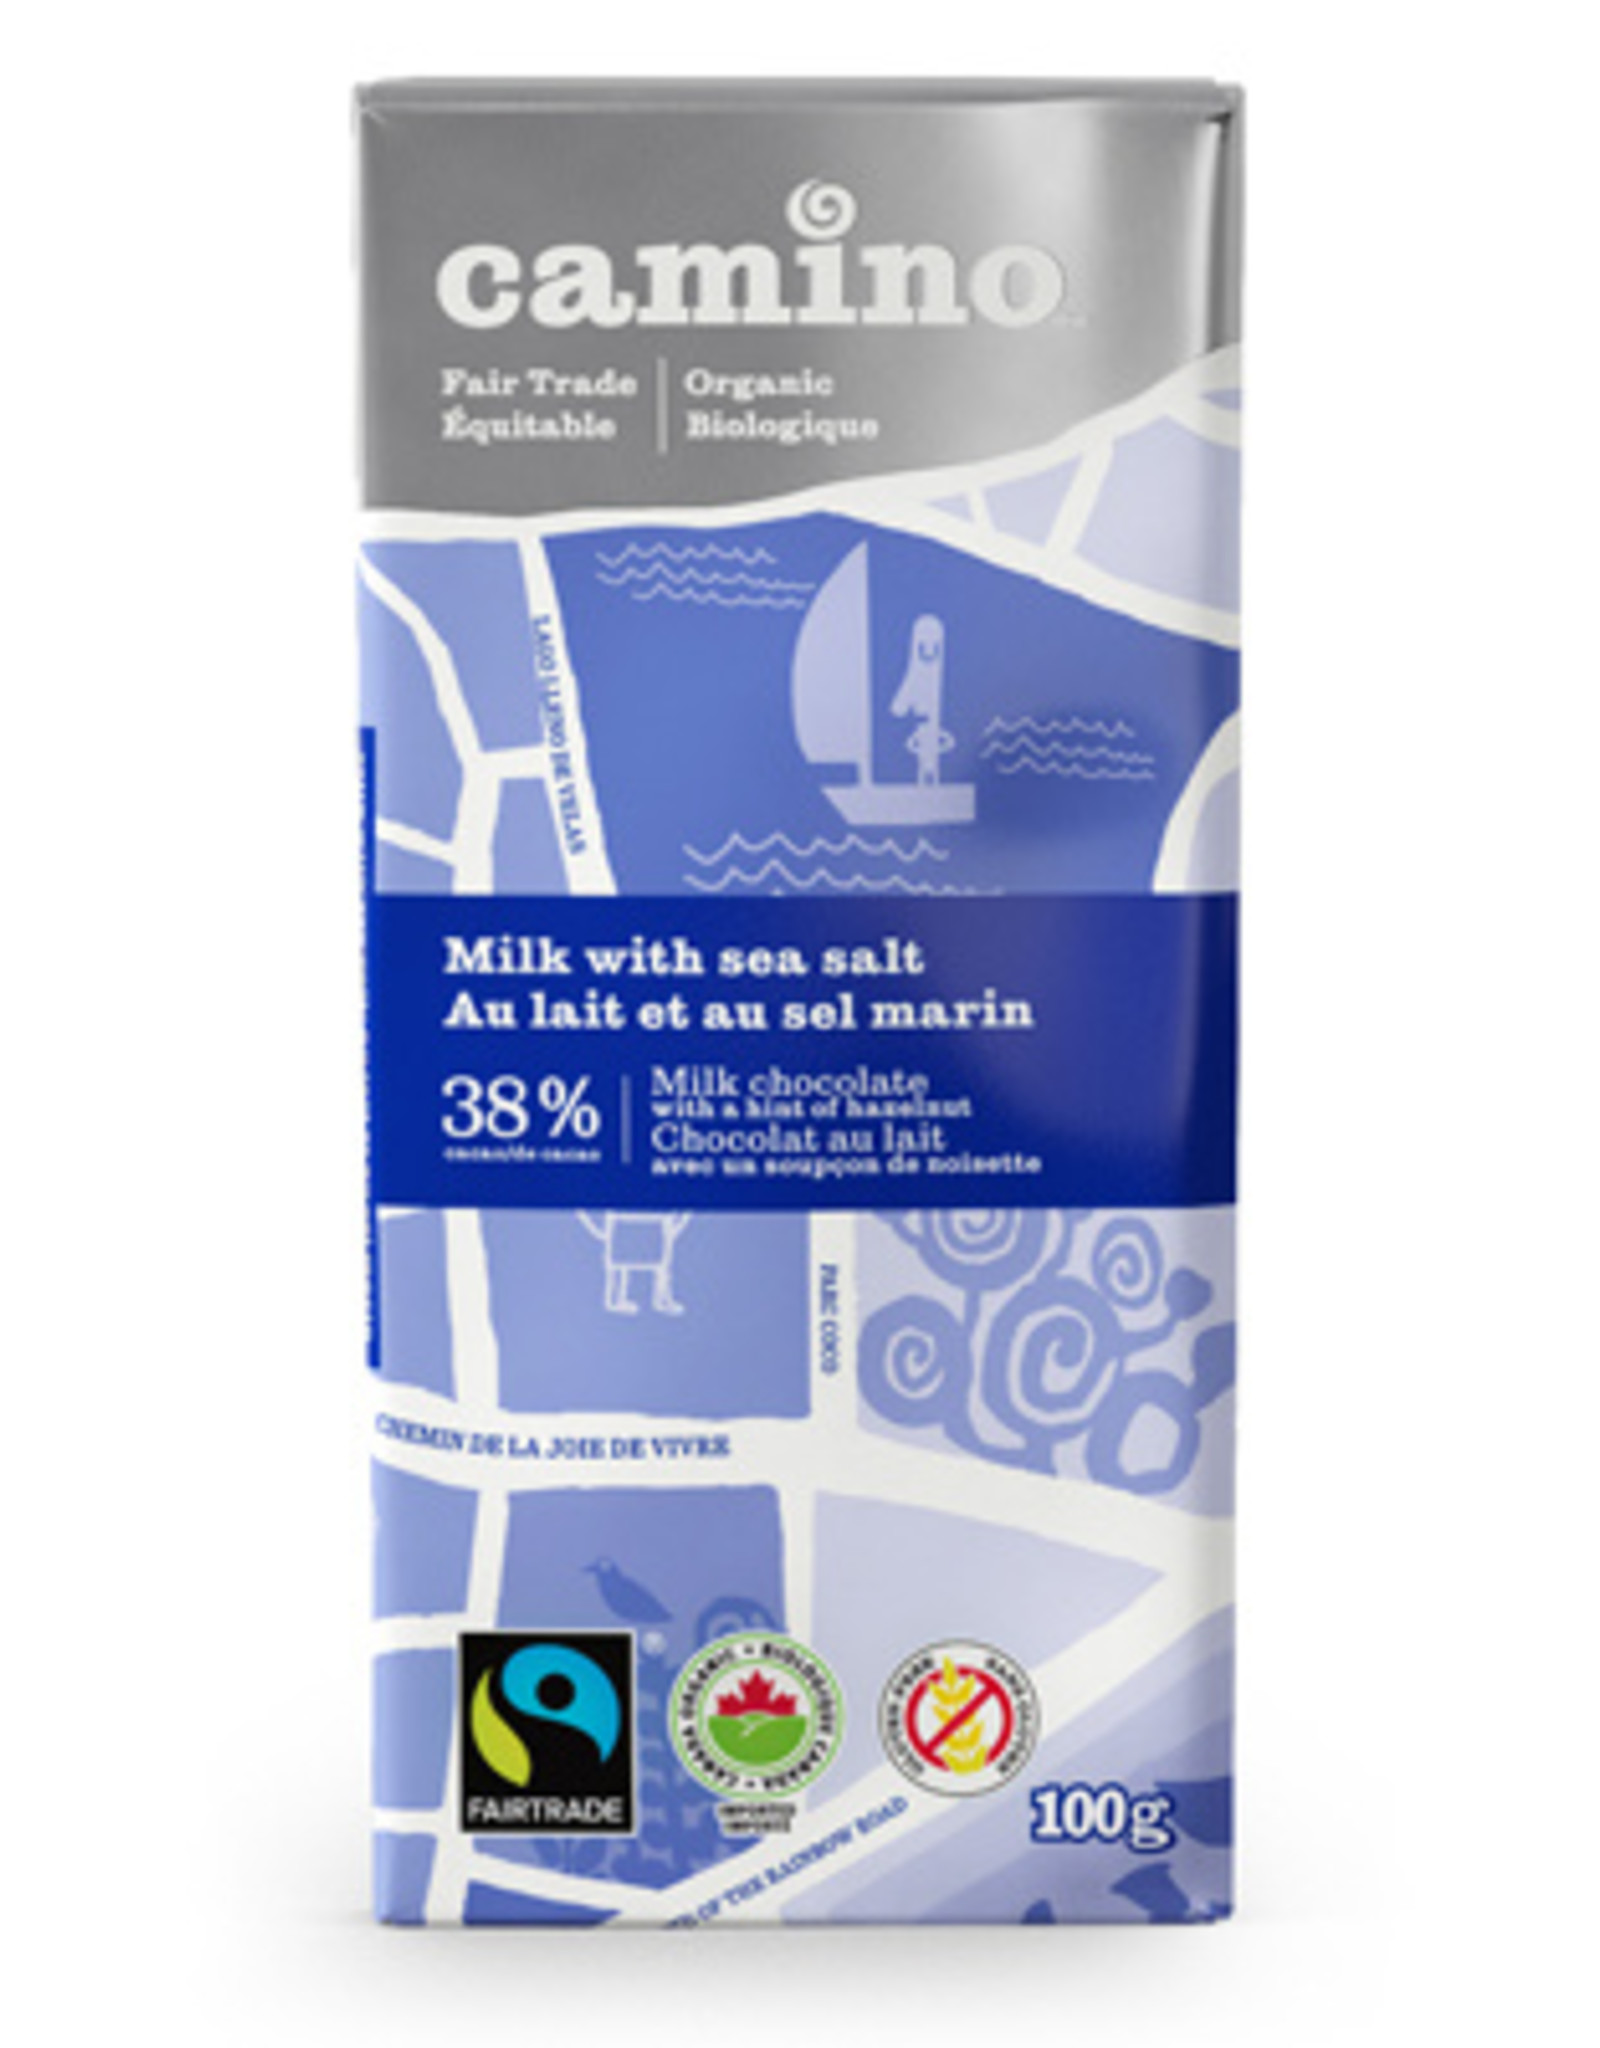 Camino Camino Milk with Sea Salt 38% choc bar 100g